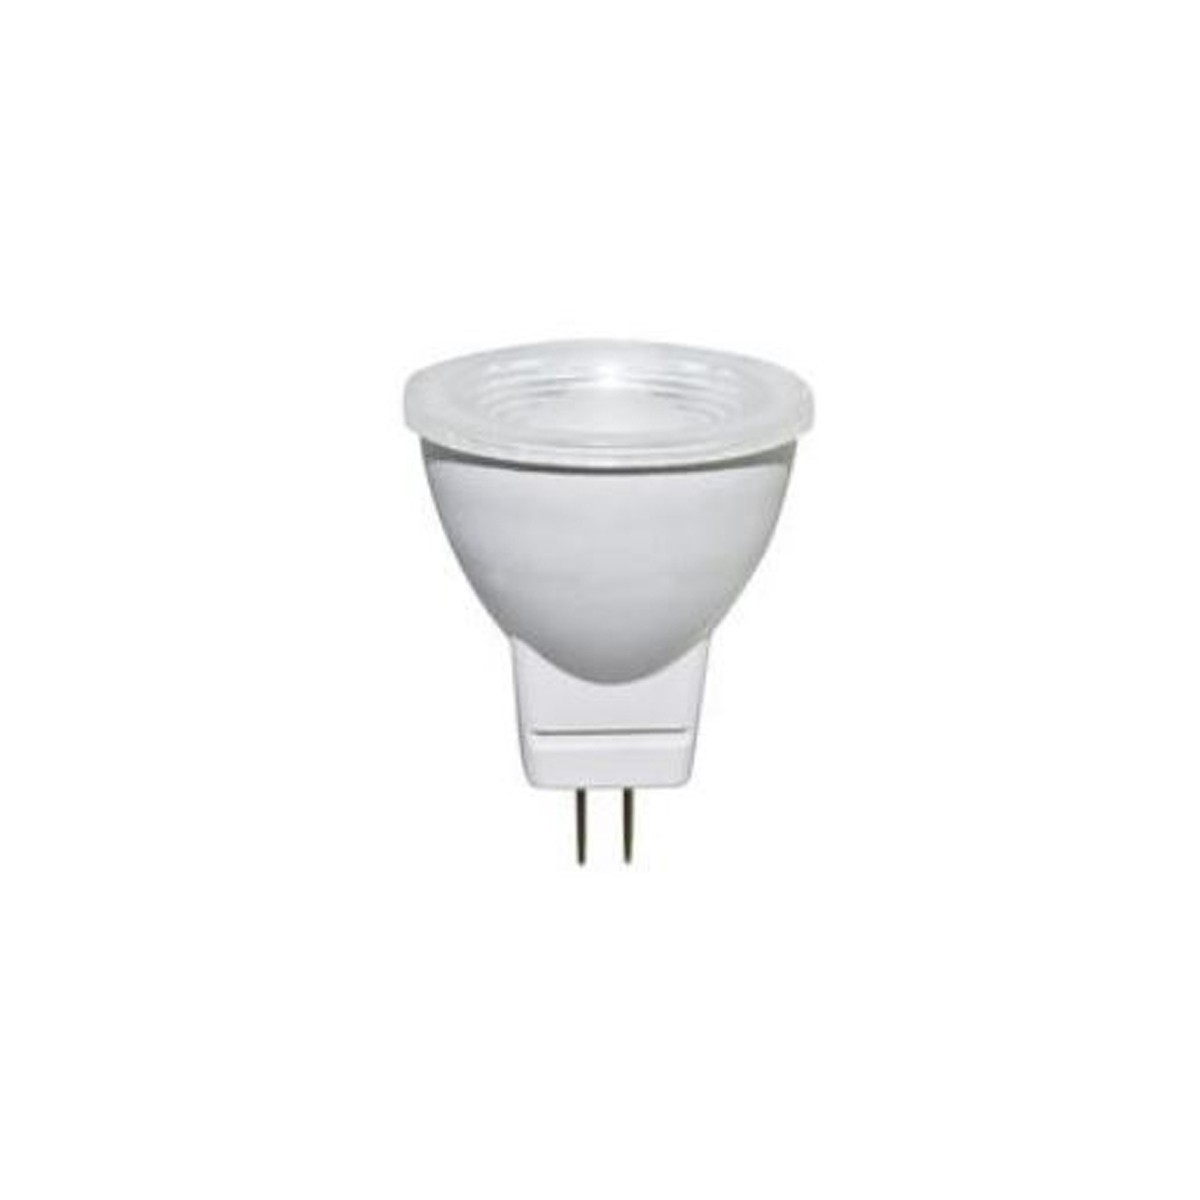 LIFE LAMPADA LED MR11 GU4 4W 4000K 12V